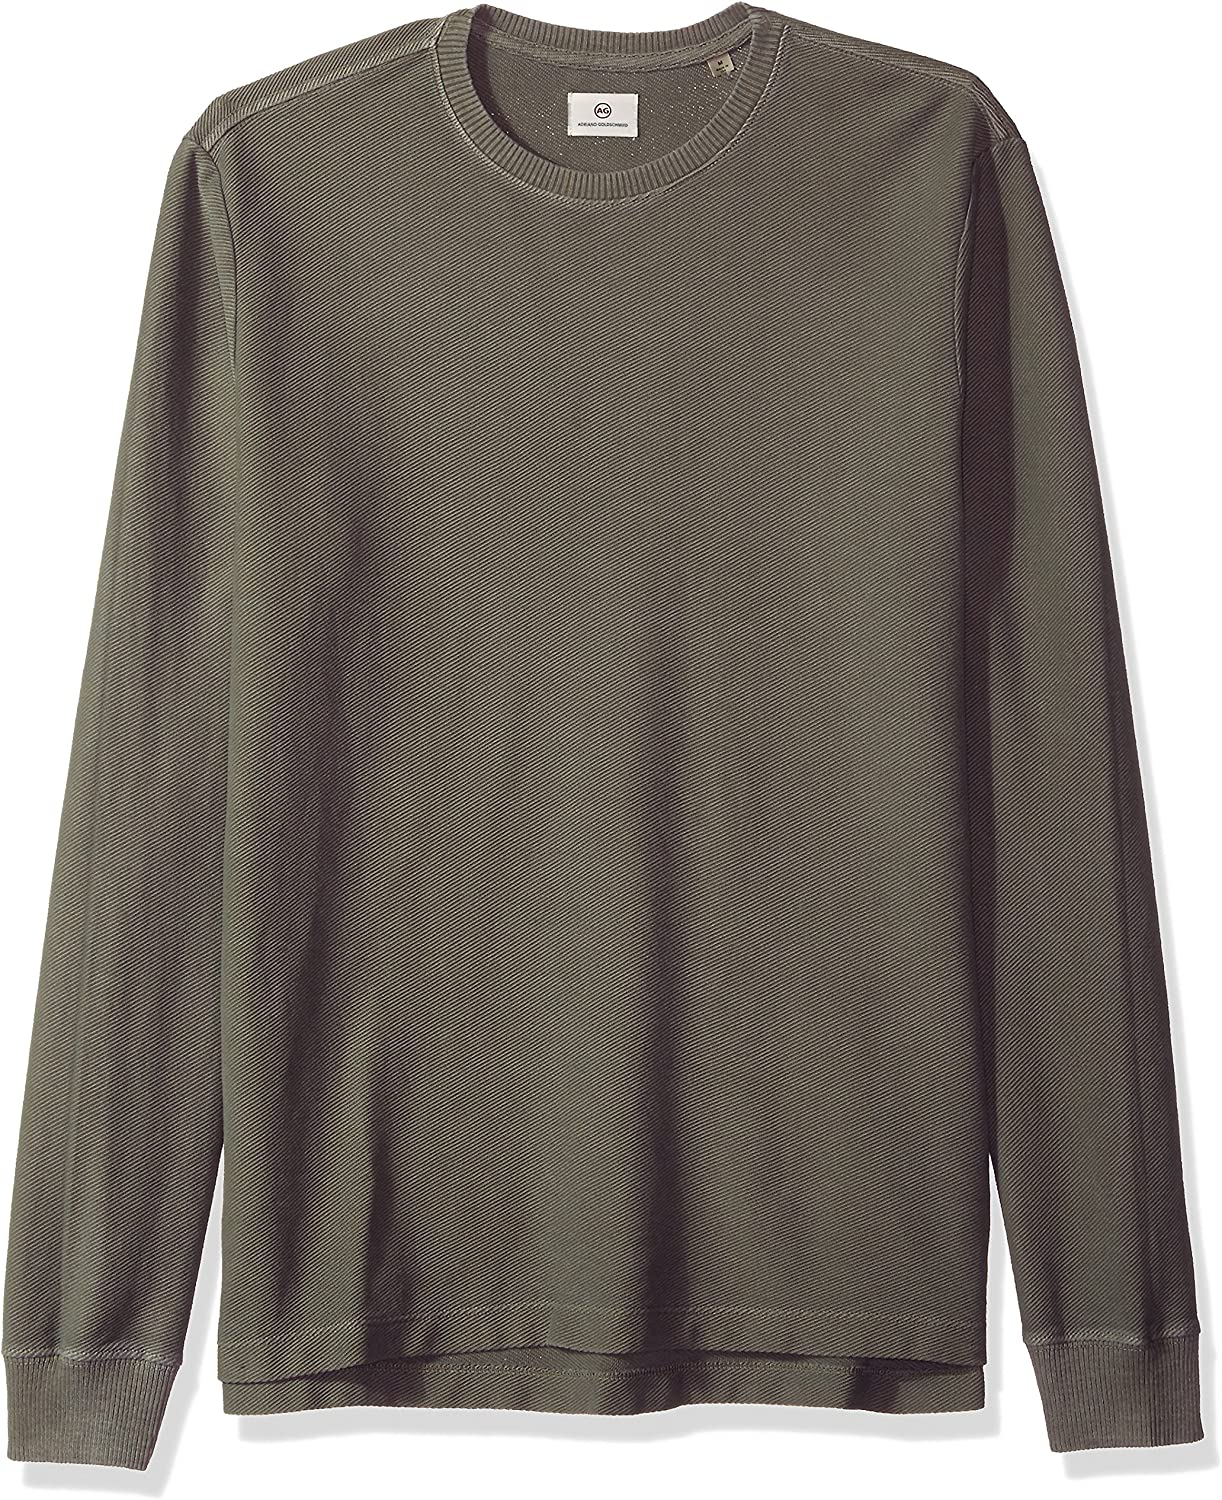 Image of Active Shirts & Tees AG Adriano Goldschmied Men's Brody Long Sleeve Pullover